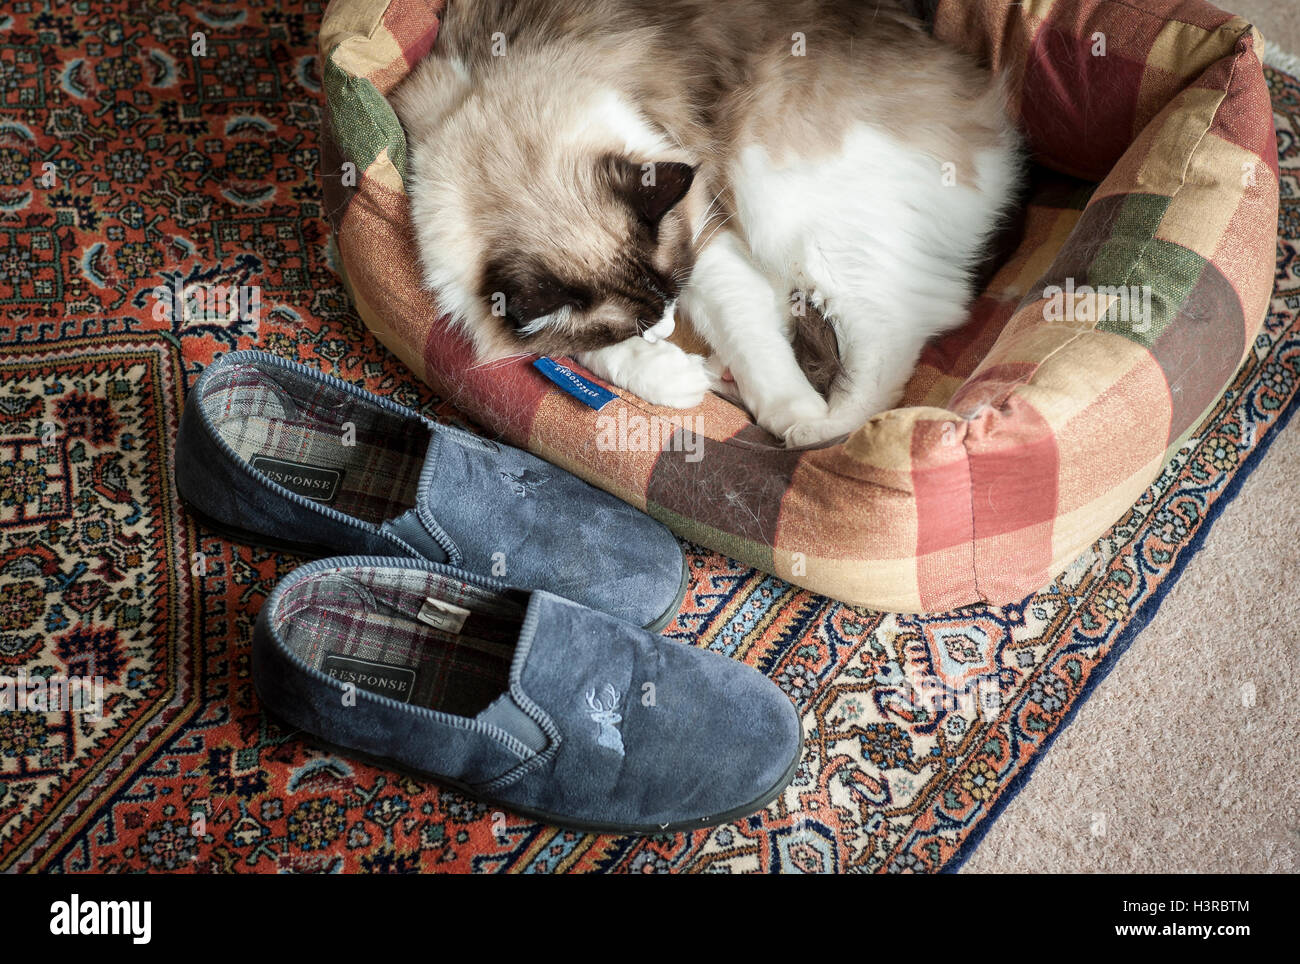 Ragdoll cat sleeping in a bed beside owners slippers - Stock Image